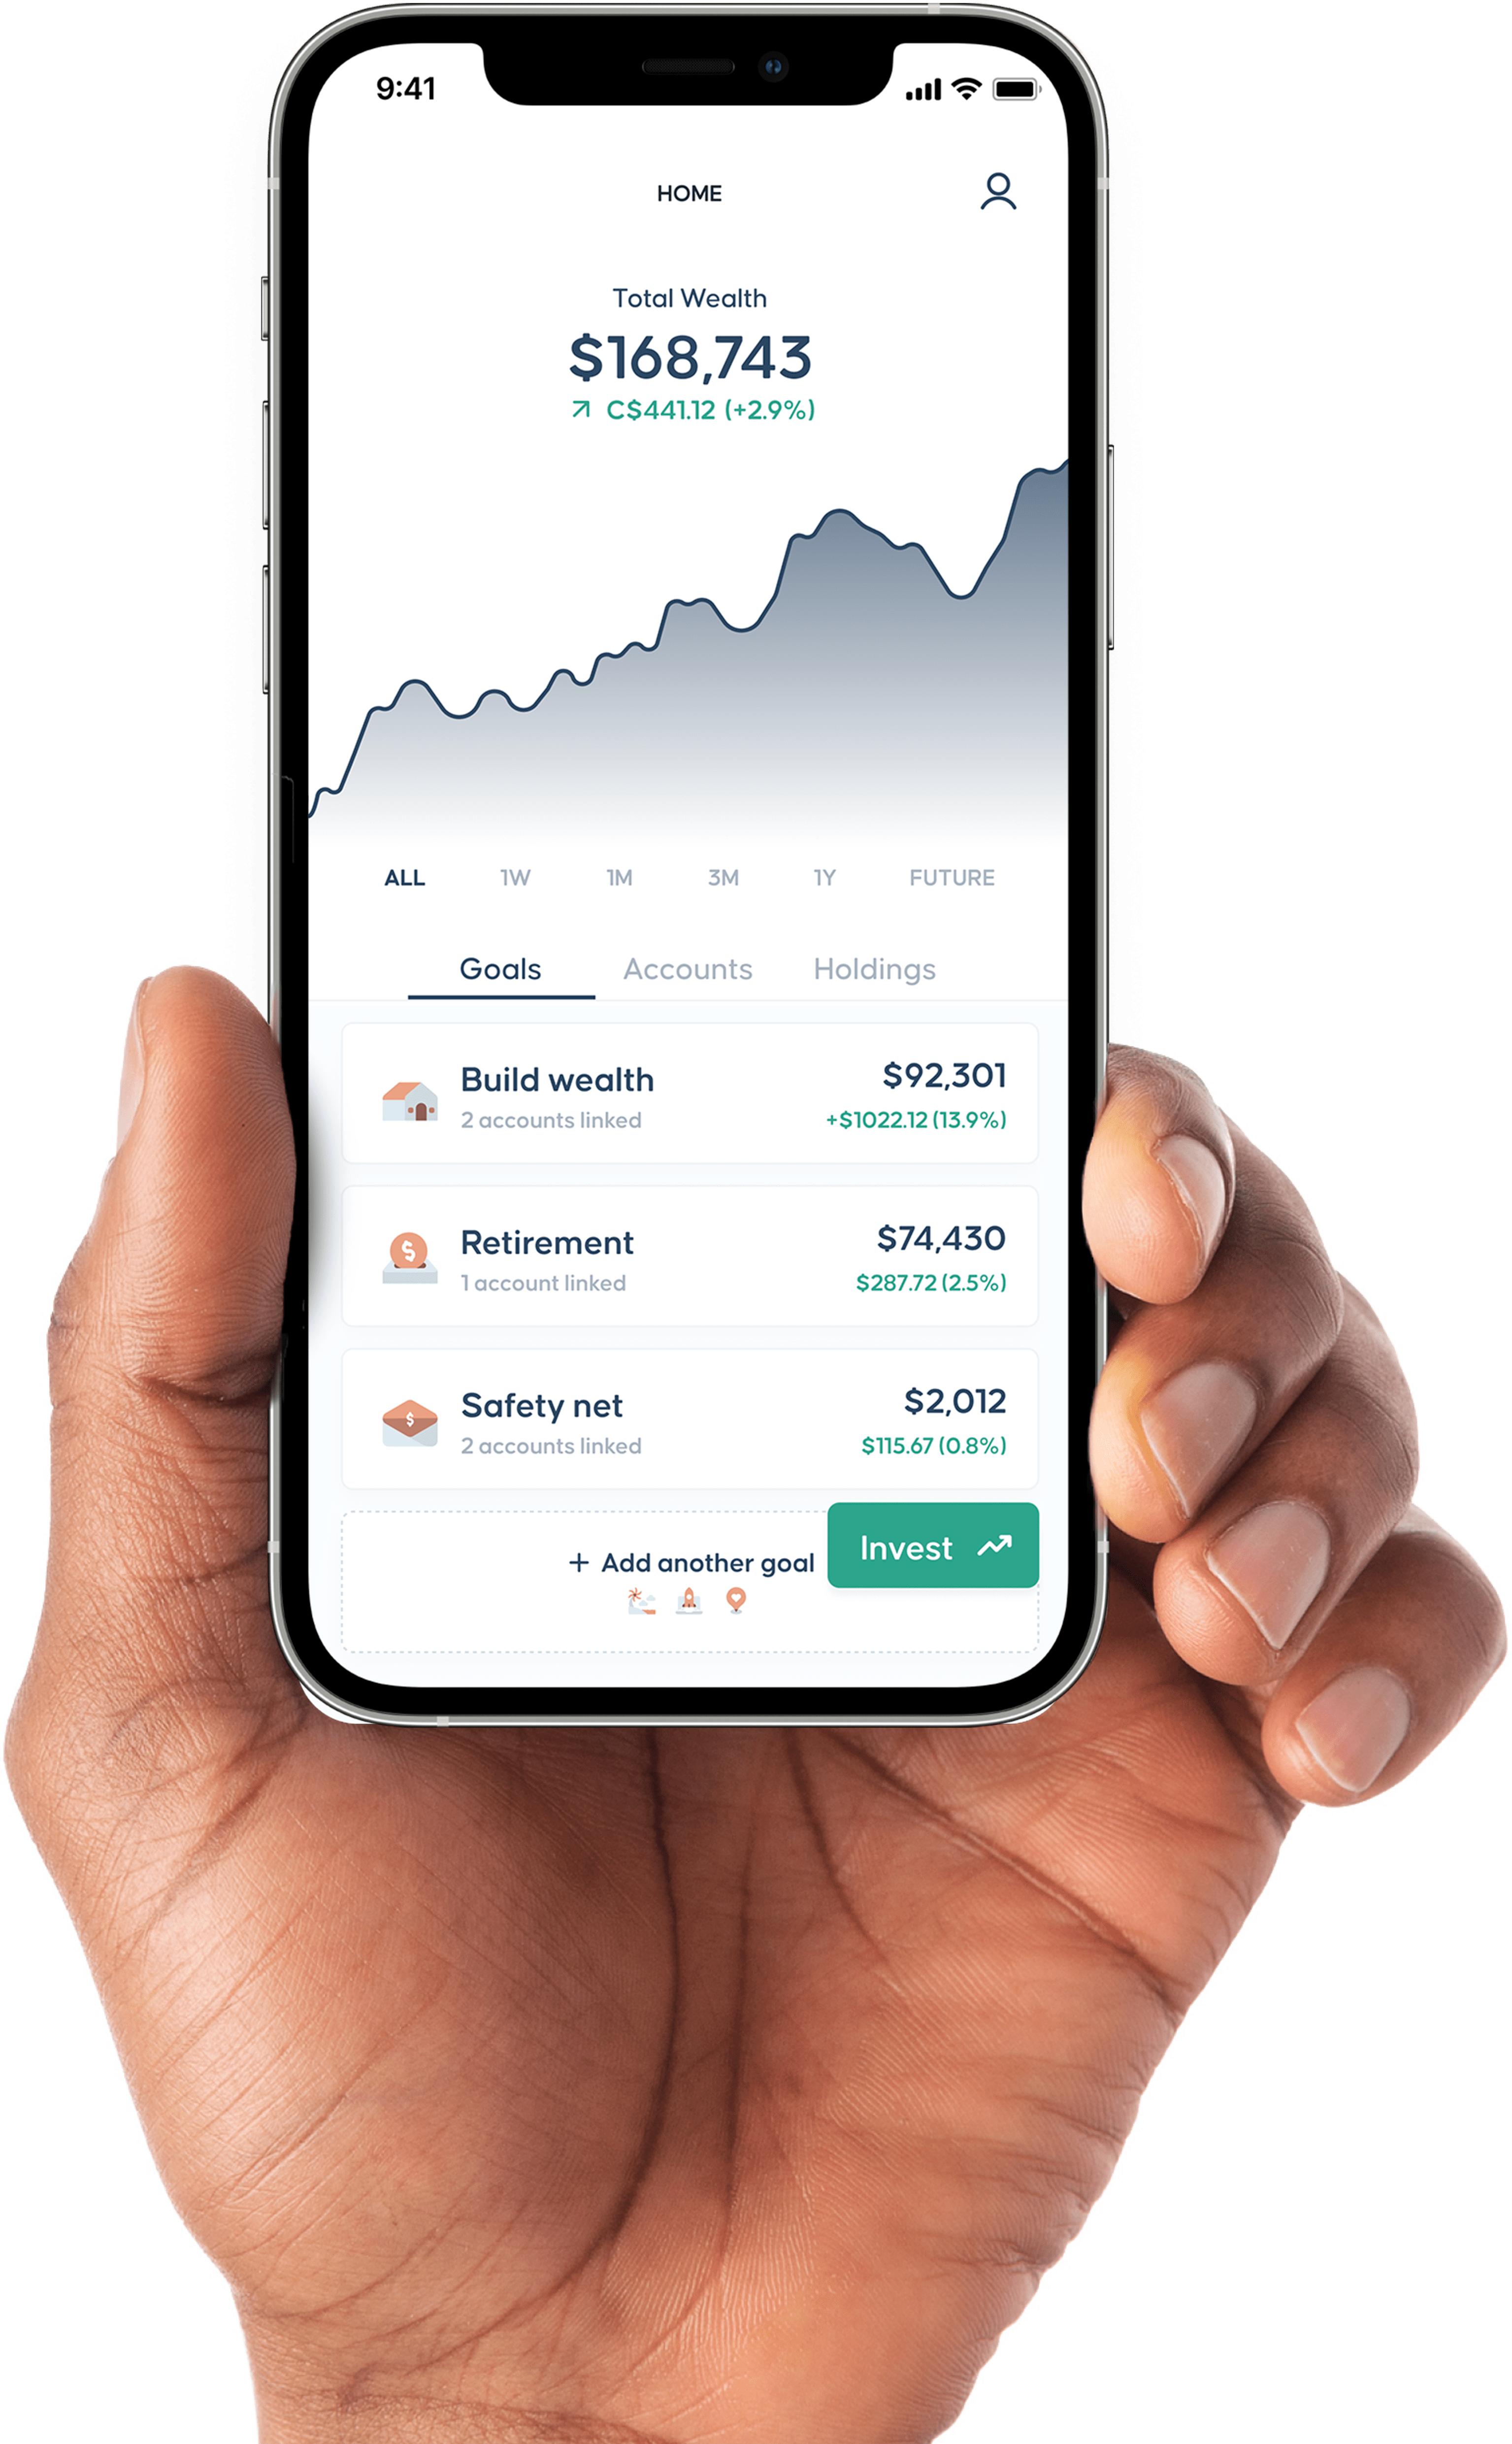 OneVest product screenshot with graphs and goals